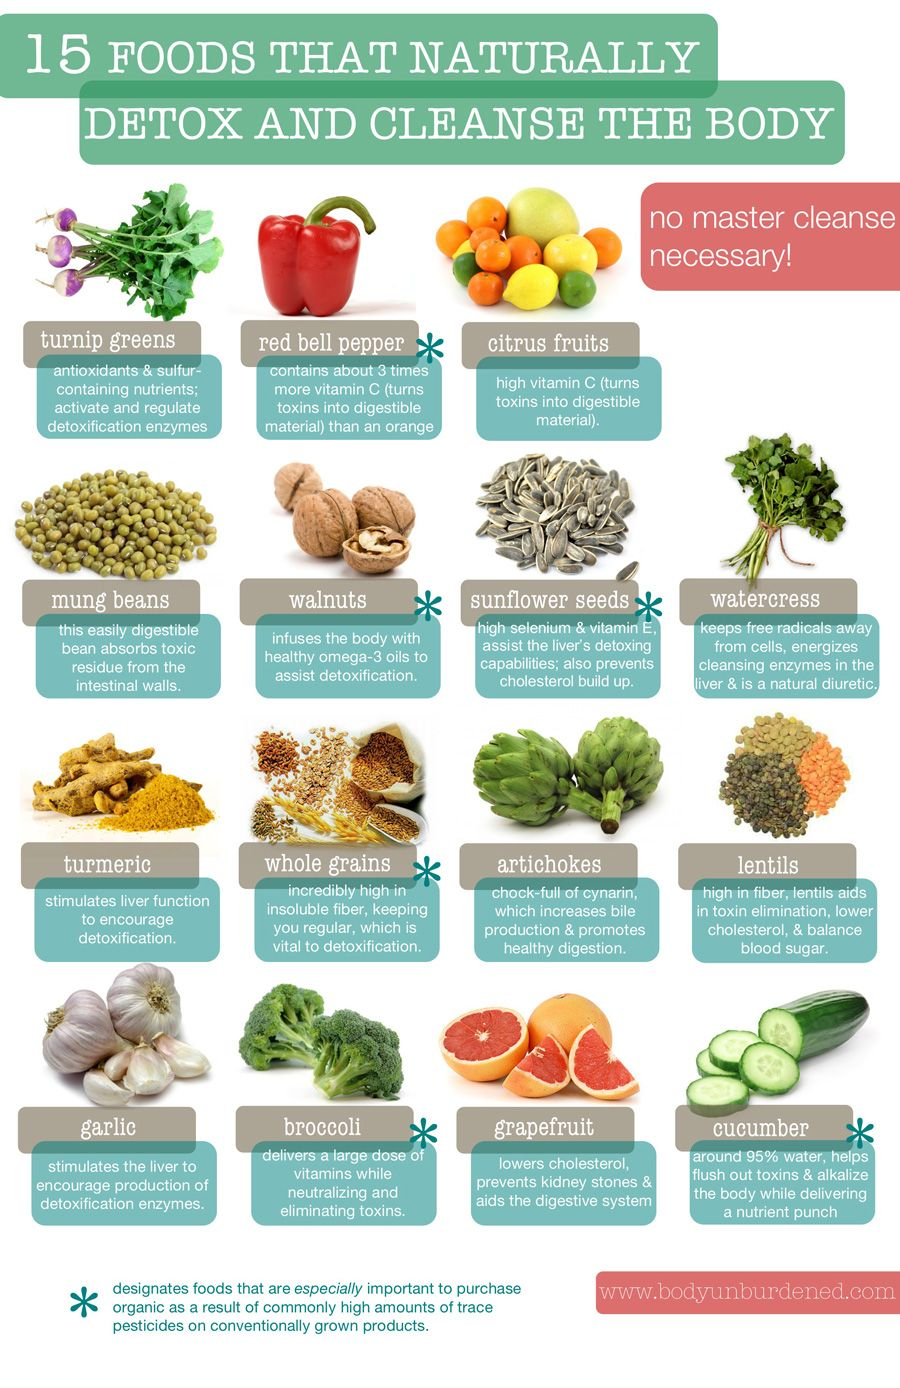 15 Foods That Naturally Detox And Cleanse Your Body Infographic http://www.elephantjournal.com/author/lynn-hasselberger/